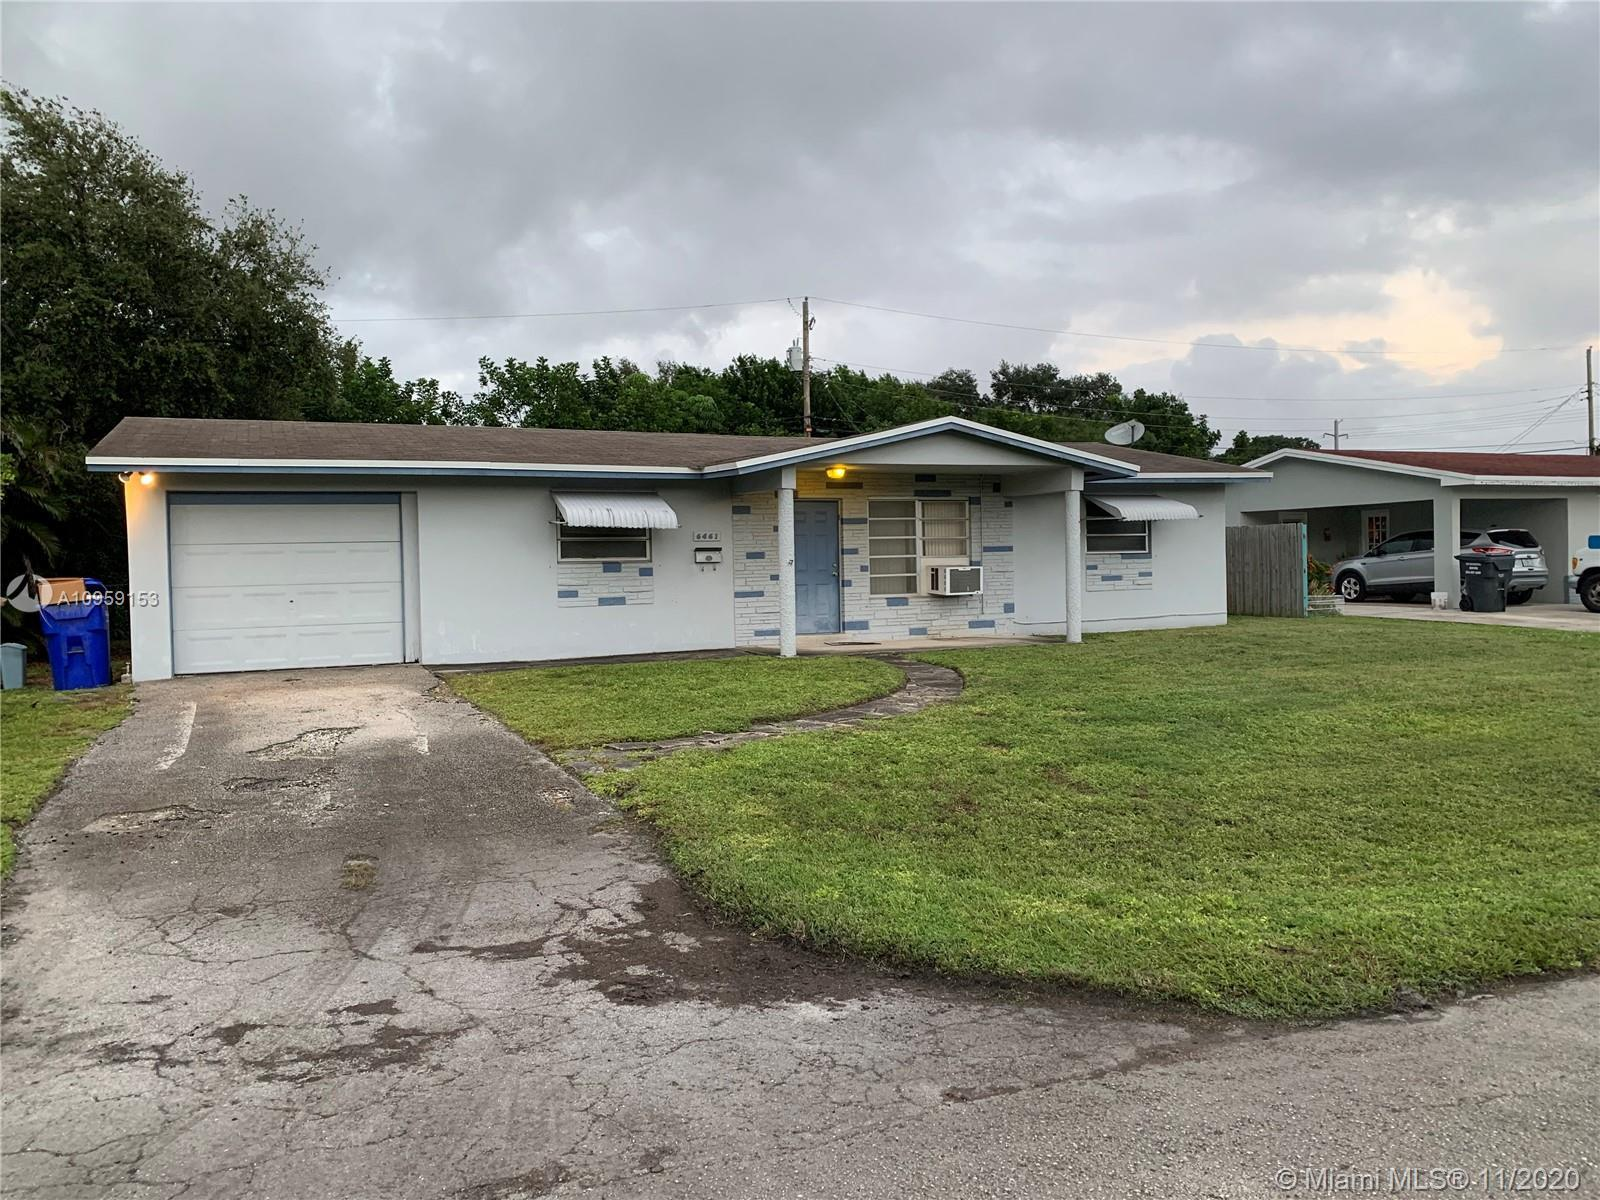 3/2 home on oversized corner fenced lot with a one car garage. Home also has a side gate to put trai